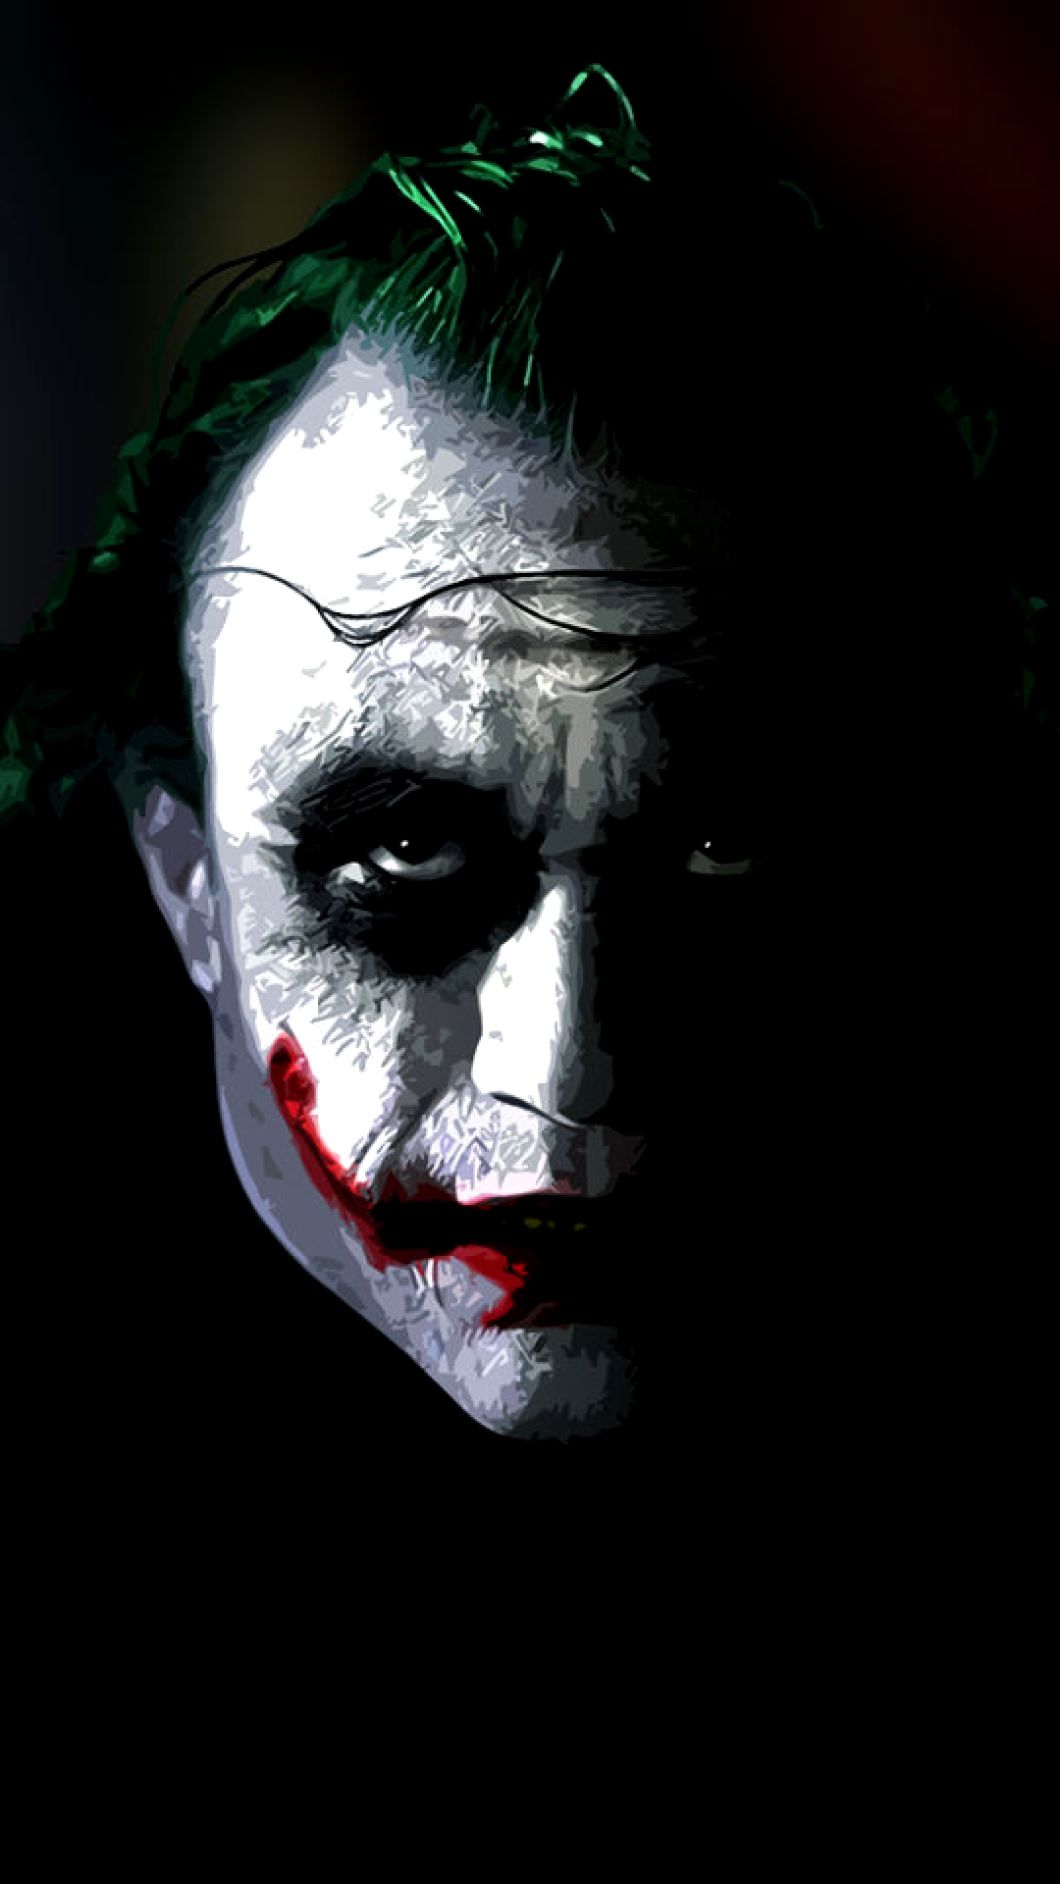 Joker Wallpaper 4k Mobile Download Gallery With Images Joker